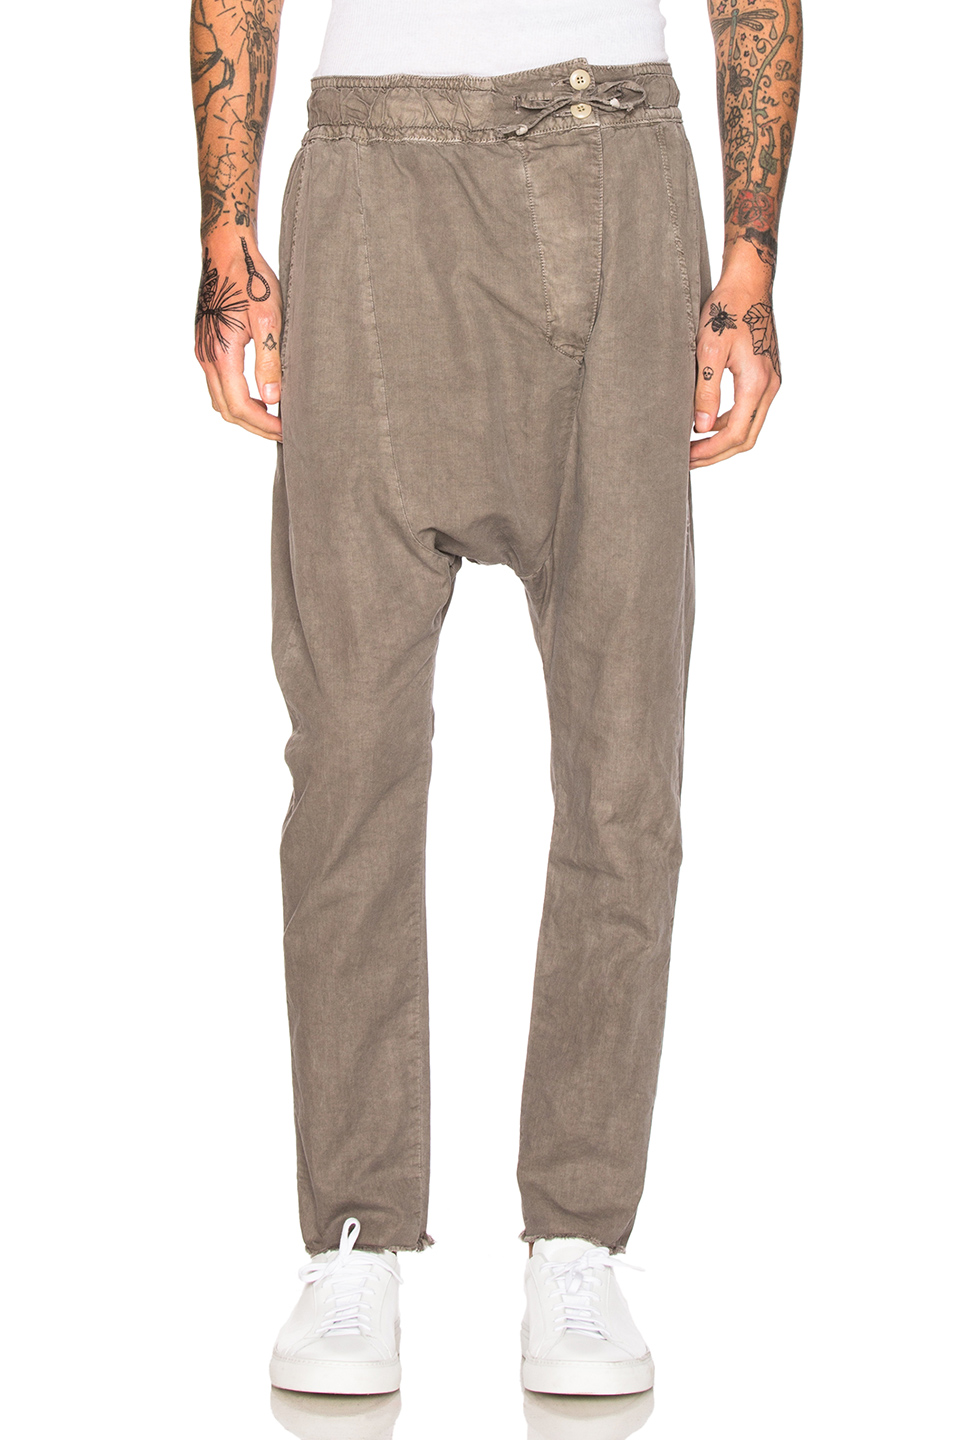 NSF Hammer Pants in Gray